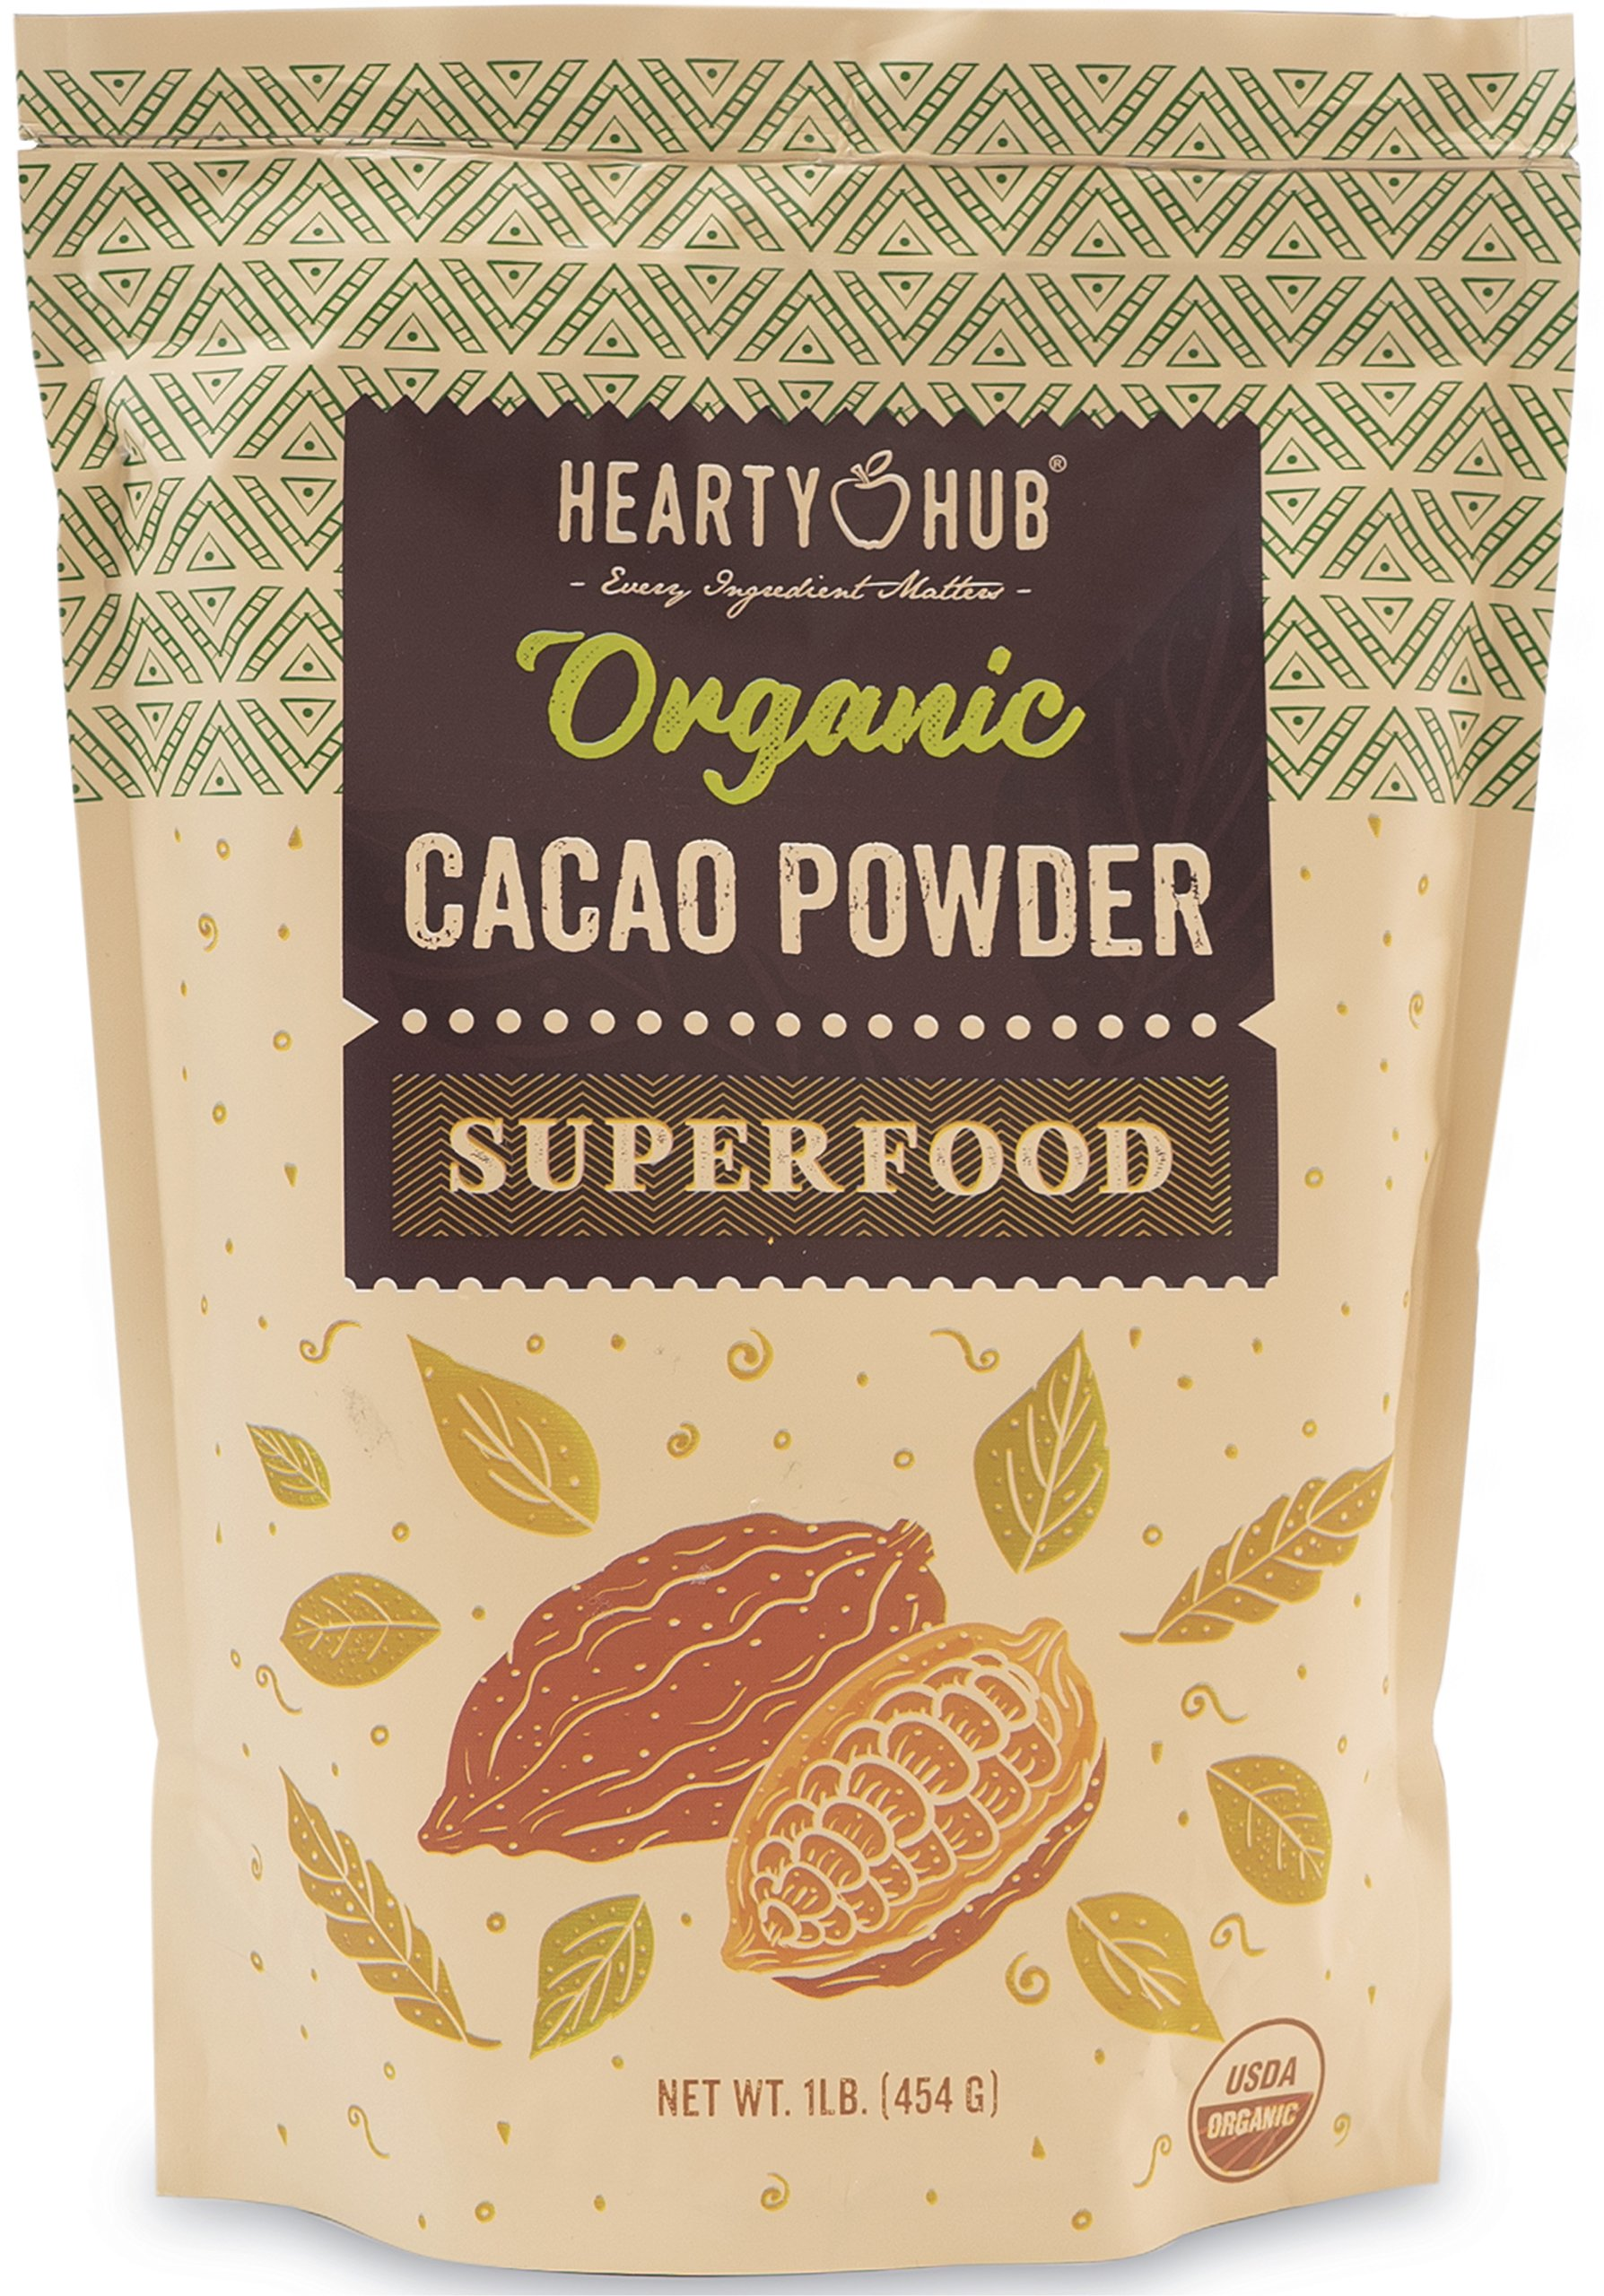 Heartyhub Organic Cacao Powder: from Hand-Picked Peruvian Criollo Cocoa Beans - 1 LB - Gluten-Free, Vegan, Kosher & Paleo Diet Friendly - Unsweetened Cocoa Powder - Raw Cacao Powder